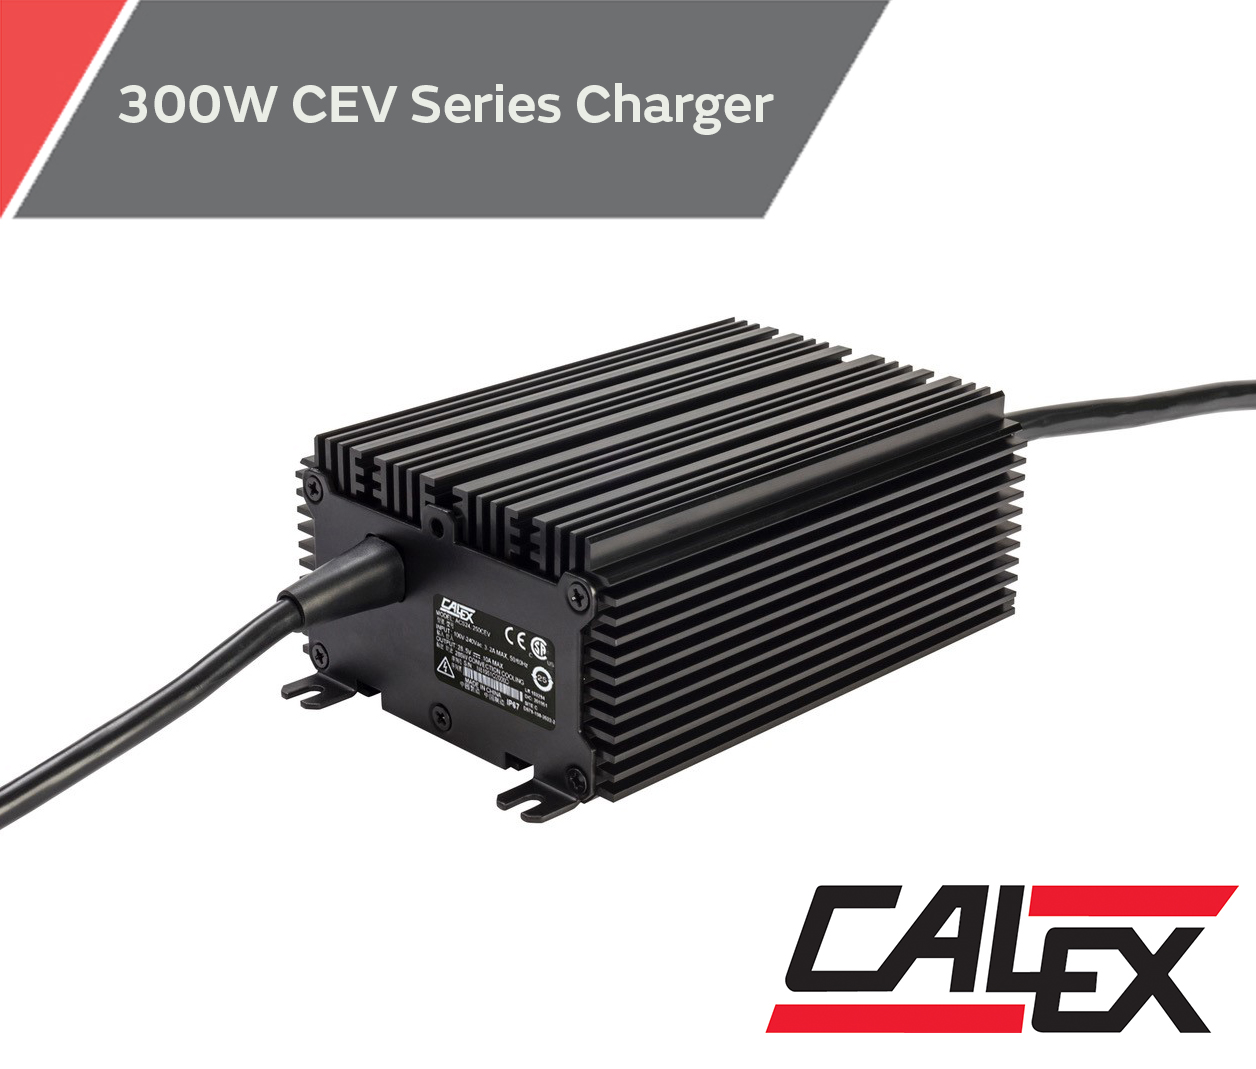 300W Li-ion Battery Charger for E-mobility Applications